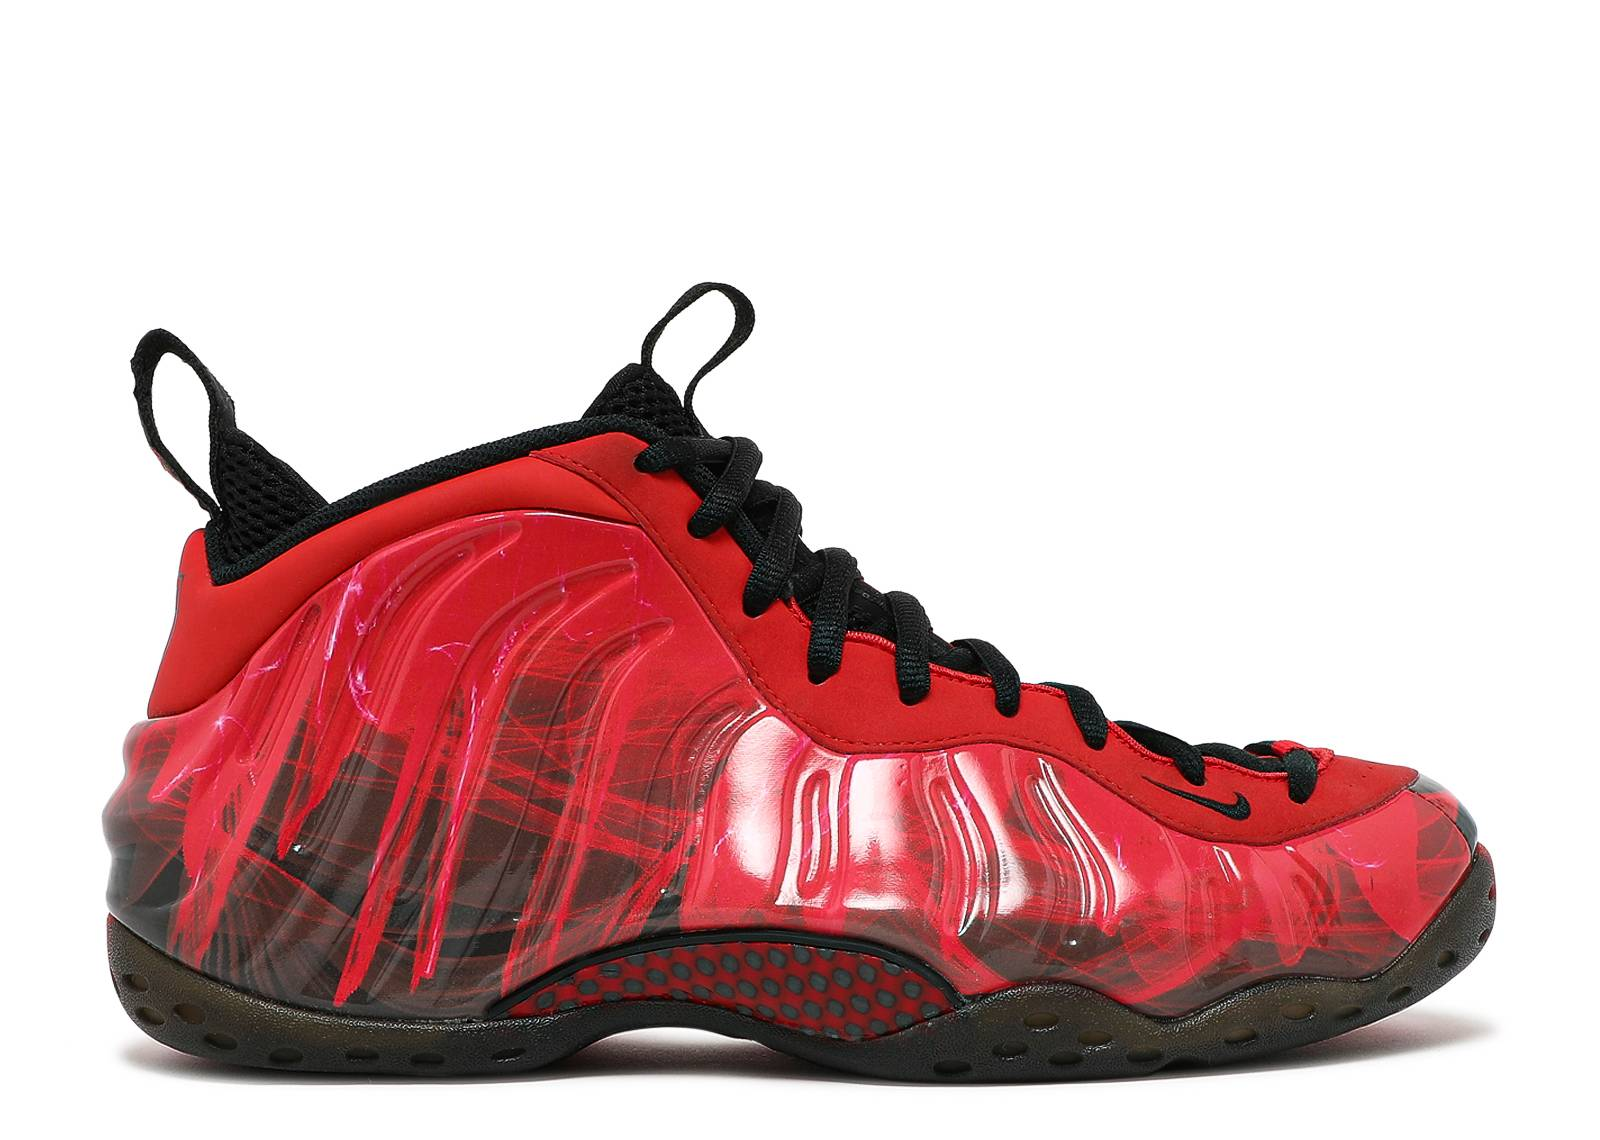 dee5bed4639 Air Foamposite One Premium Db